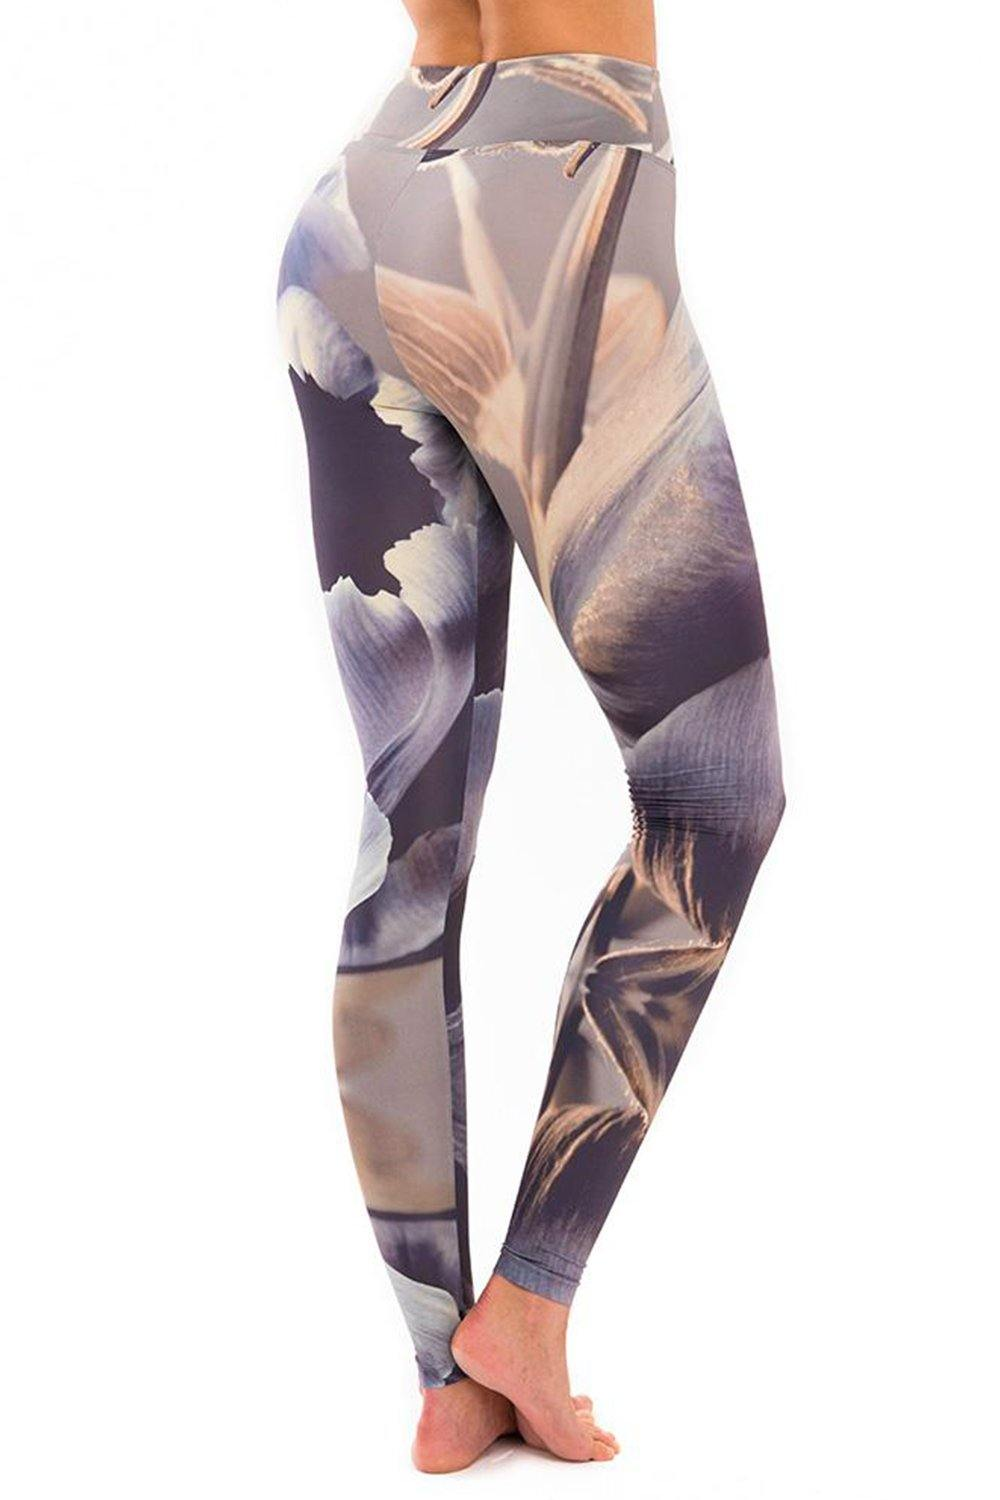 Iron Tulip Leggings - JSP Ready